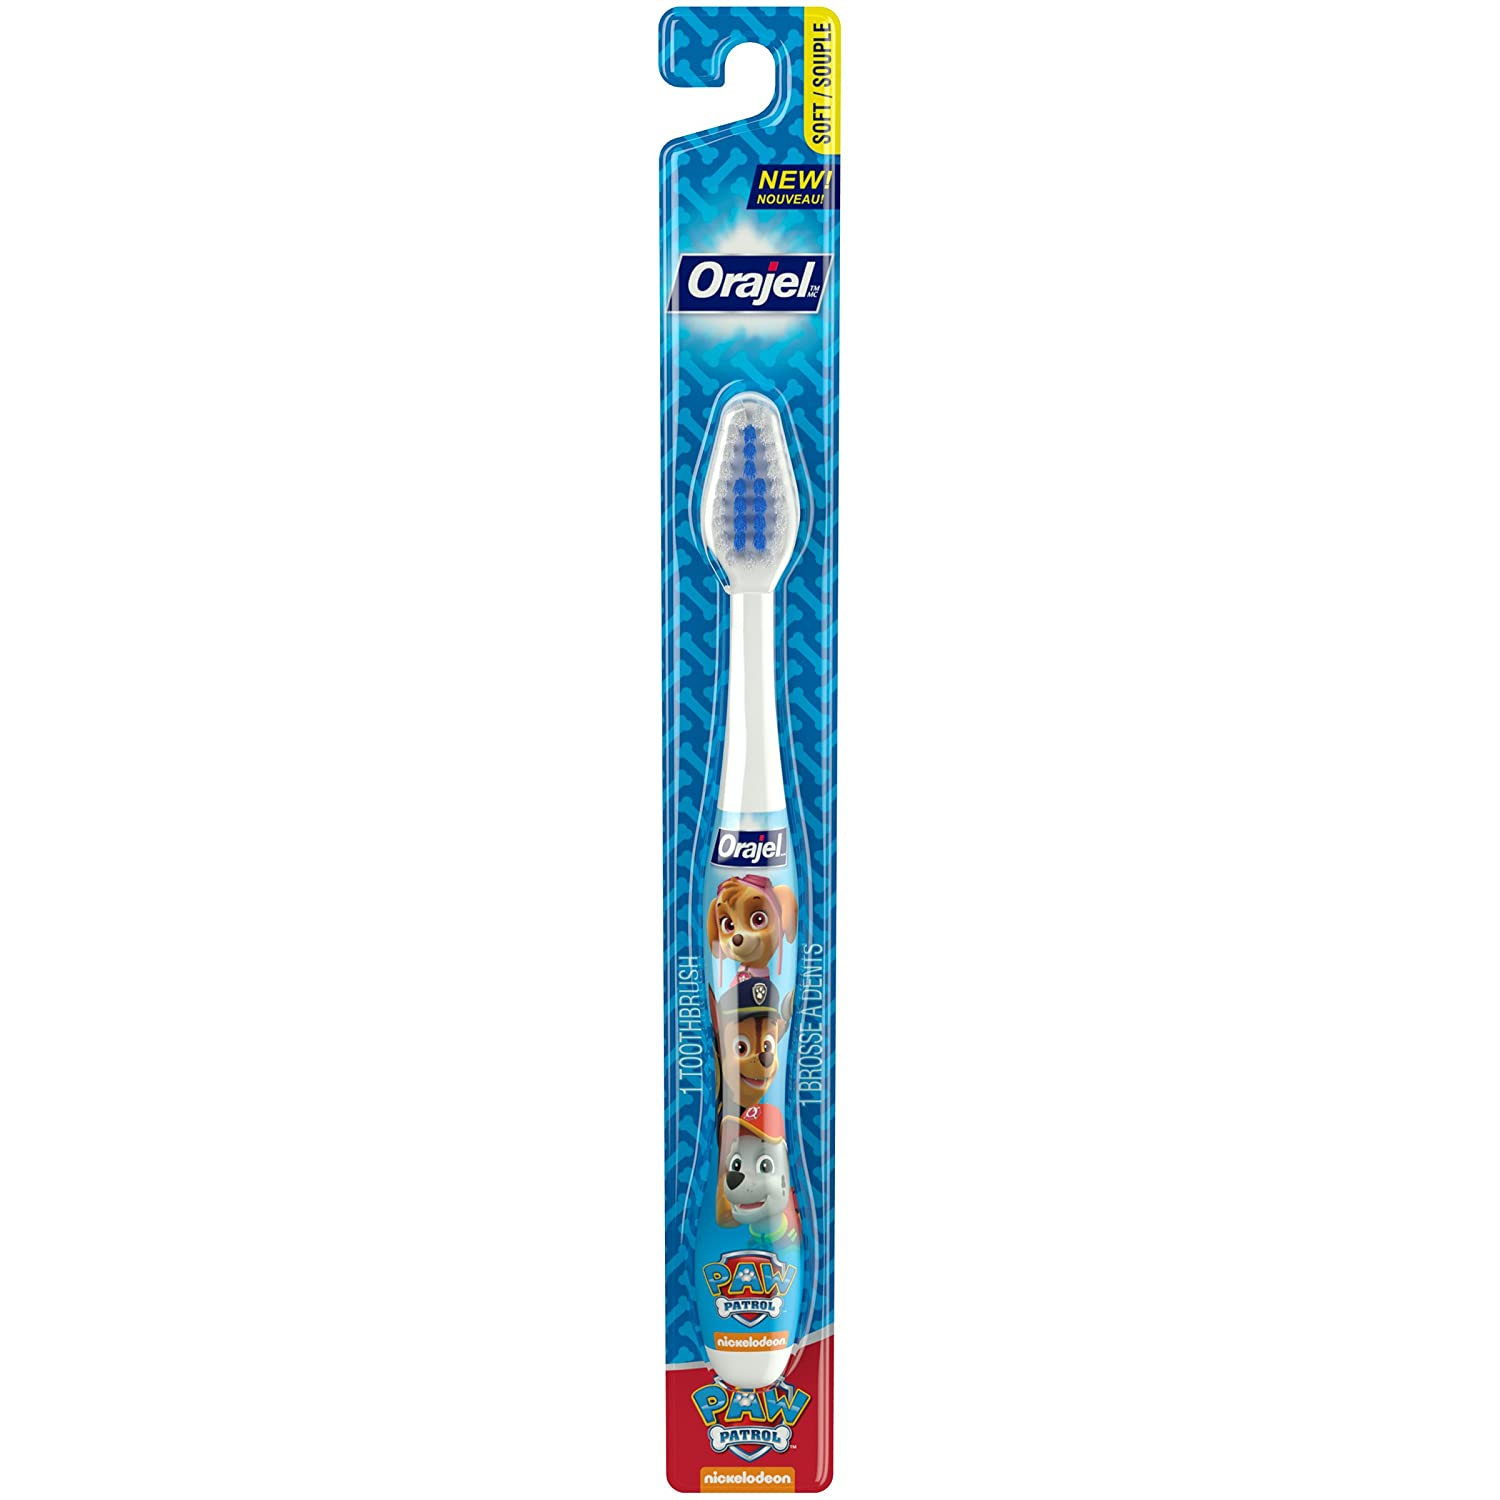 Orajel Kids Paw Patrol Toothbrush, Soft Bristles Church & Dwight CA